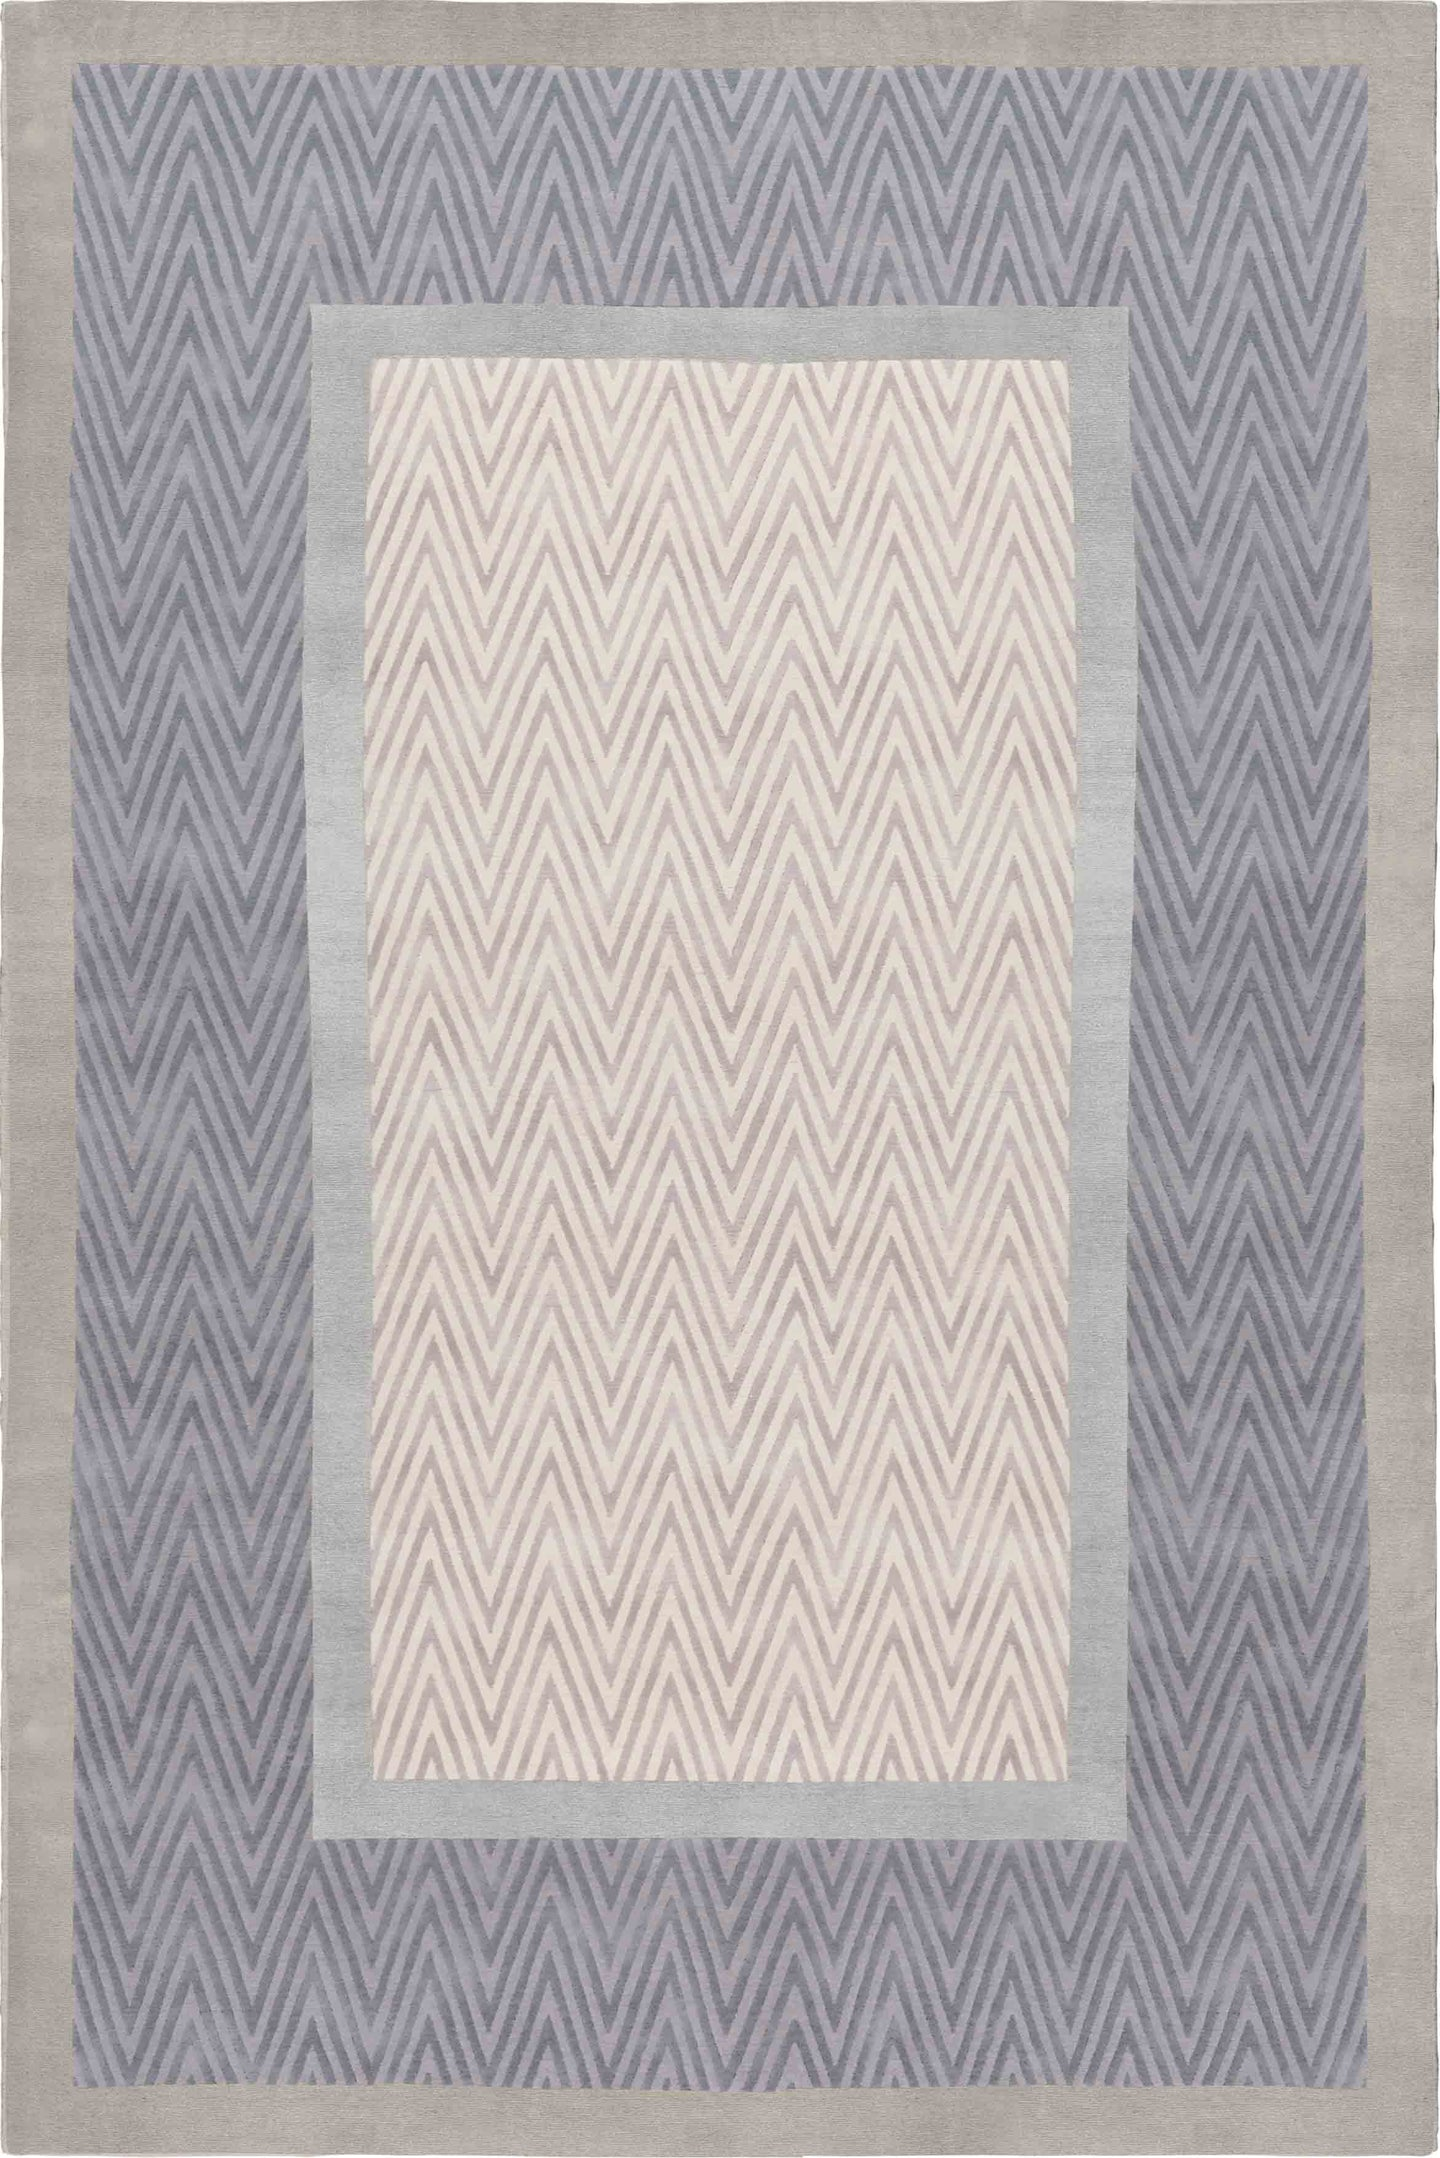 Herringbone Neutral by Jonathan Saunders